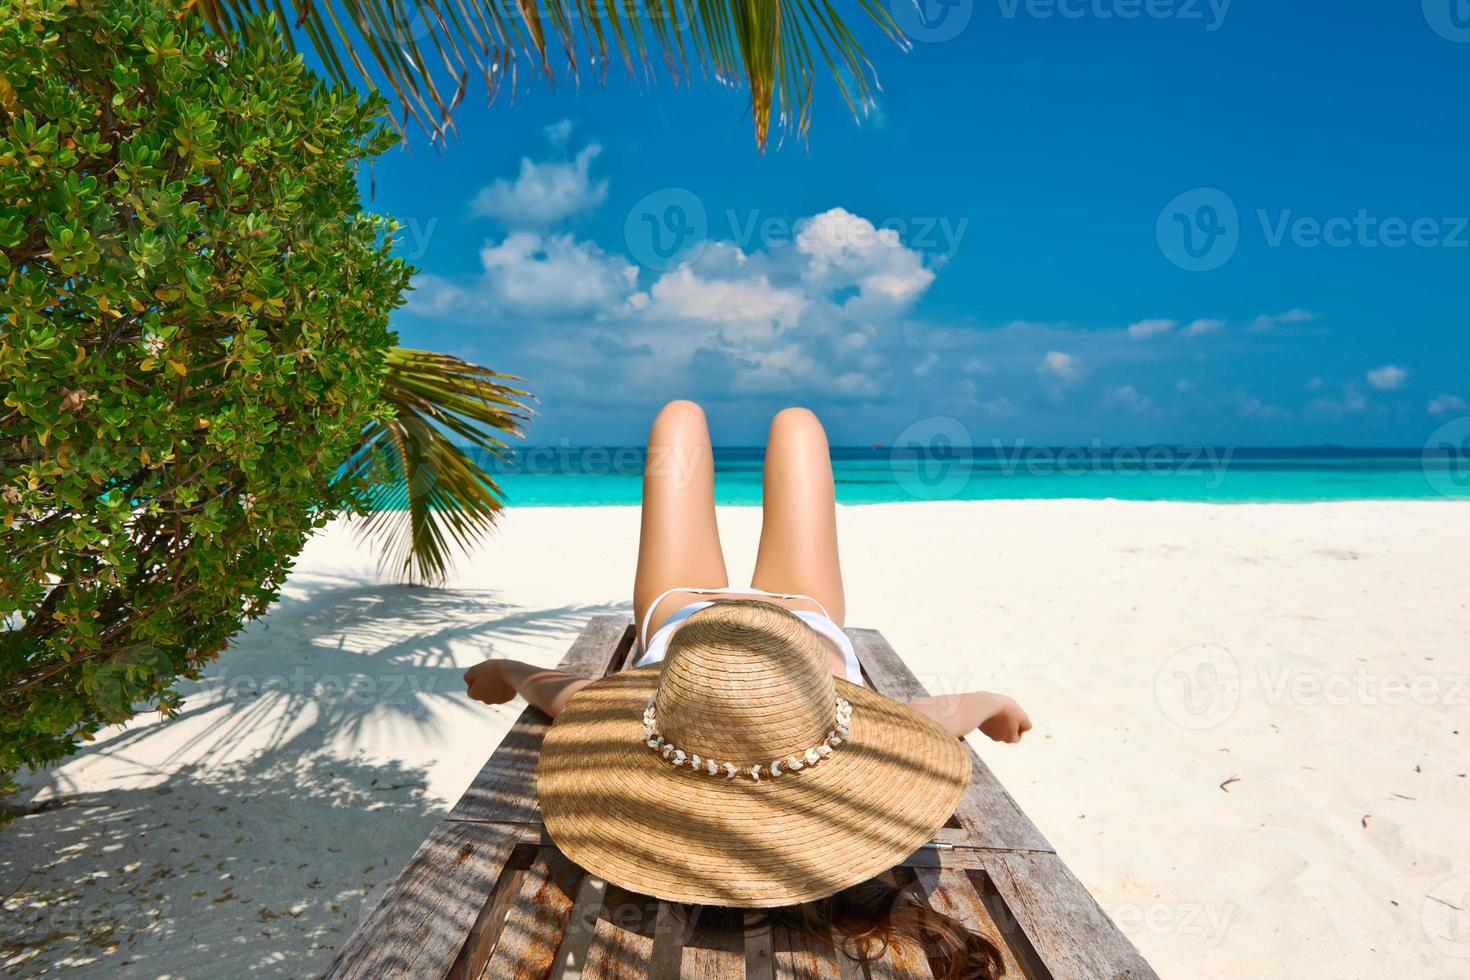 vrouw op strand liggend op chaise lounge foto